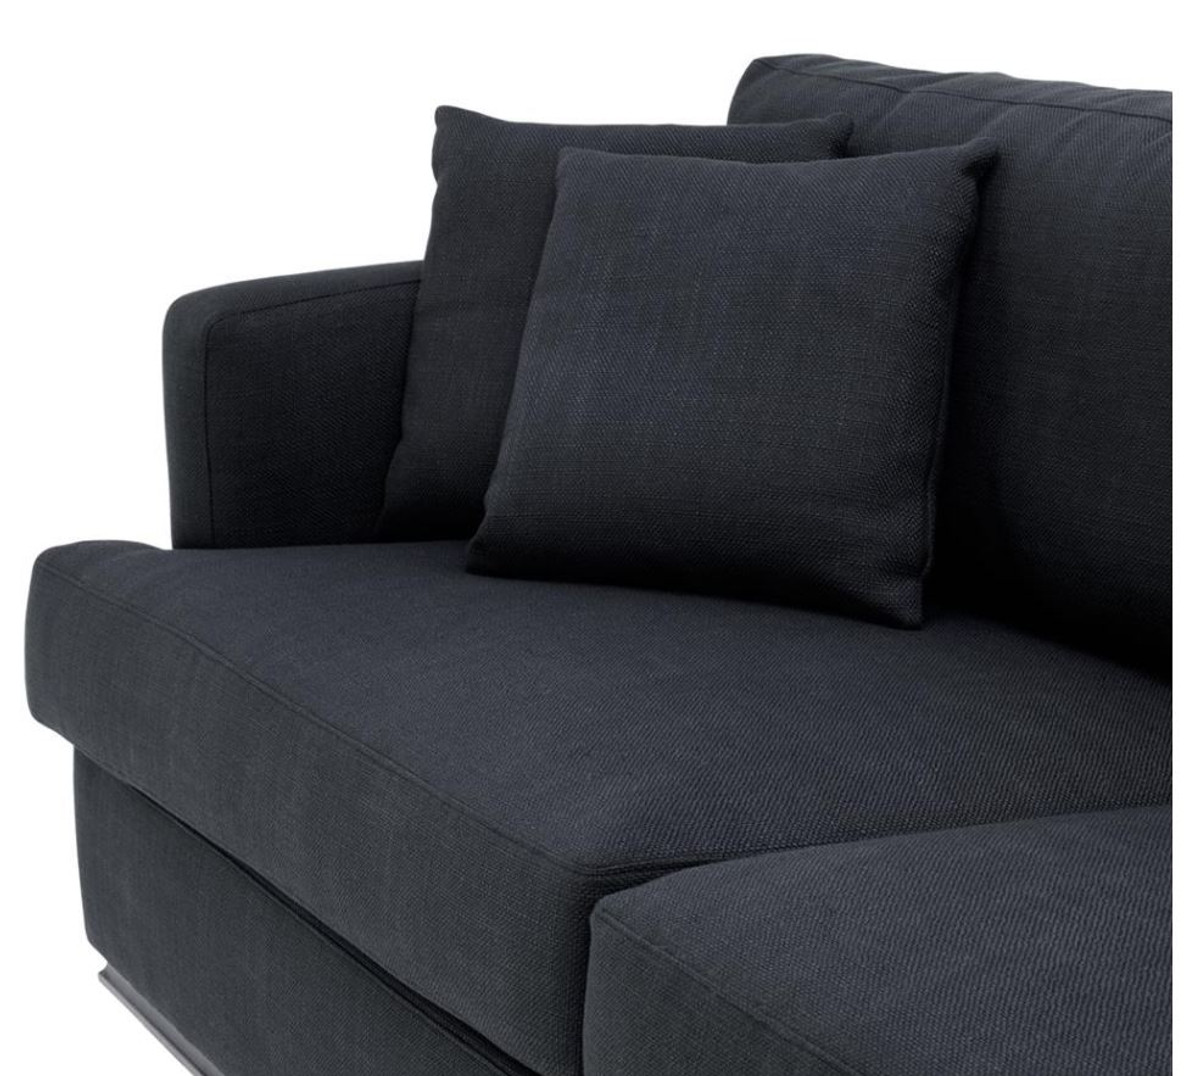 casa padrino luxus hotel sofa schwarz 234 x 103 x h 86 cm limited edition sofas luxus hotel sofas. Black Bedroom Furniture Sets. Home Design Ideas